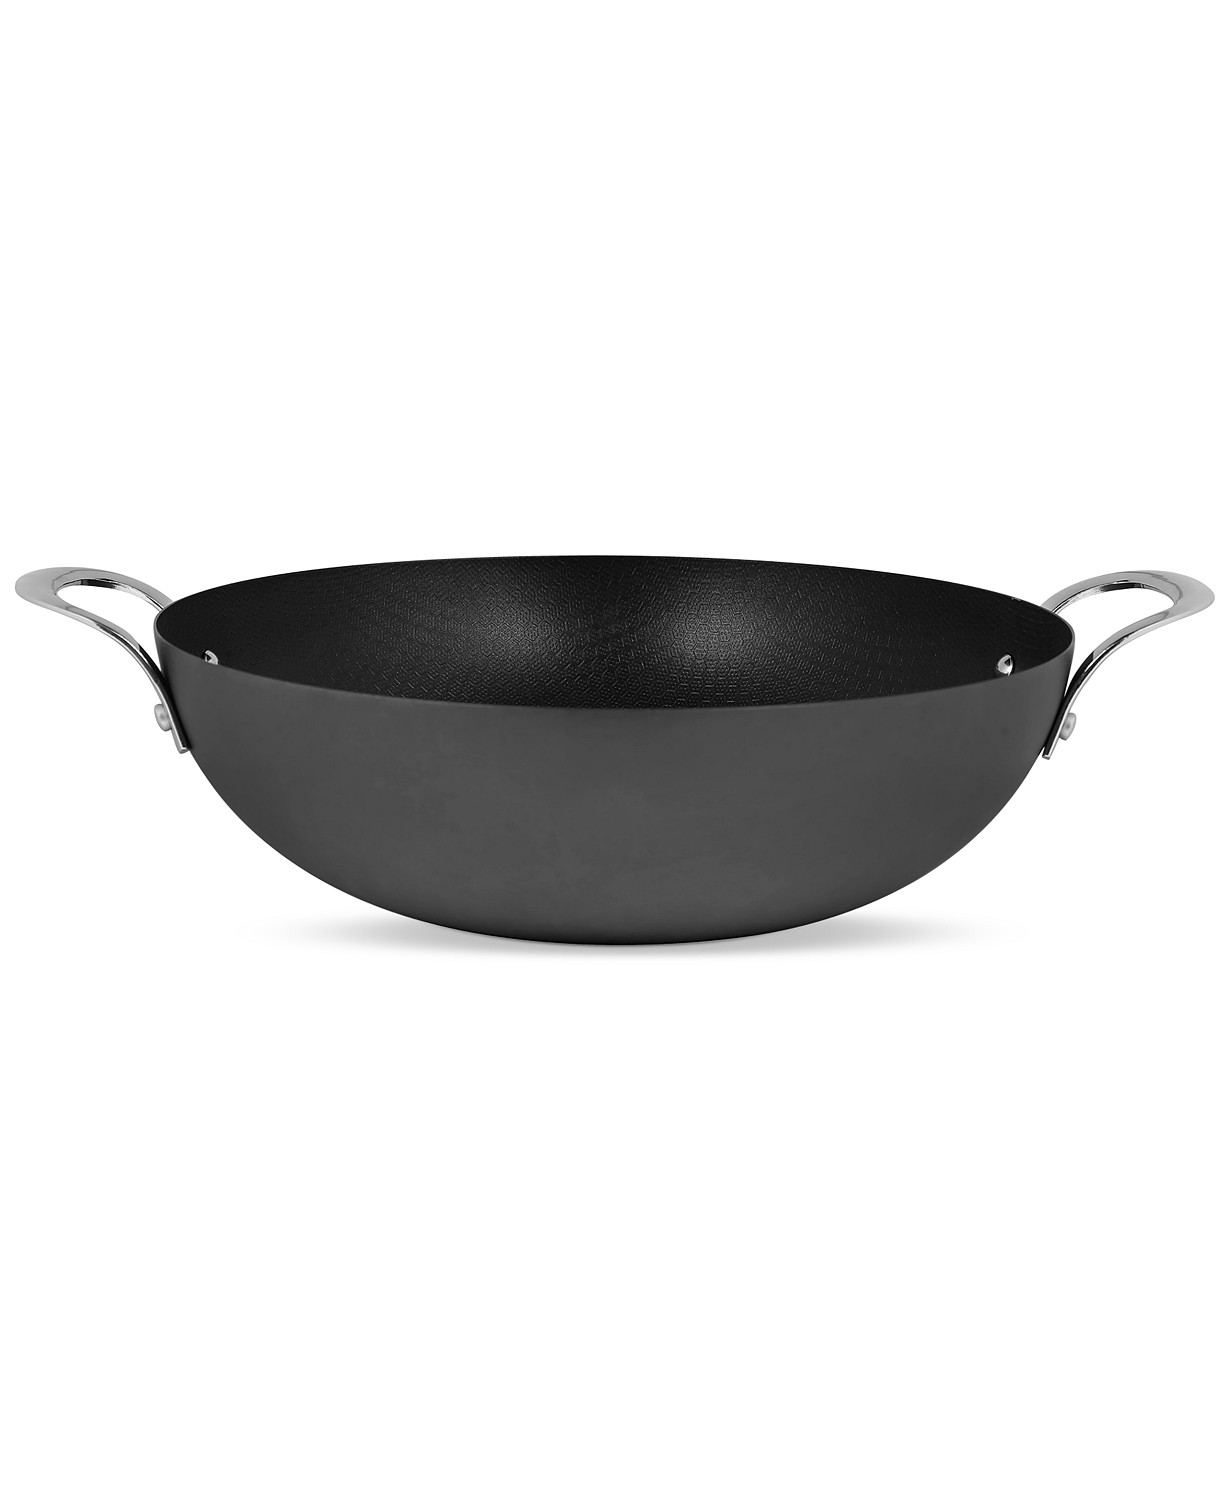 6-Qt. Carbon Steel Wok, Created for Macy's